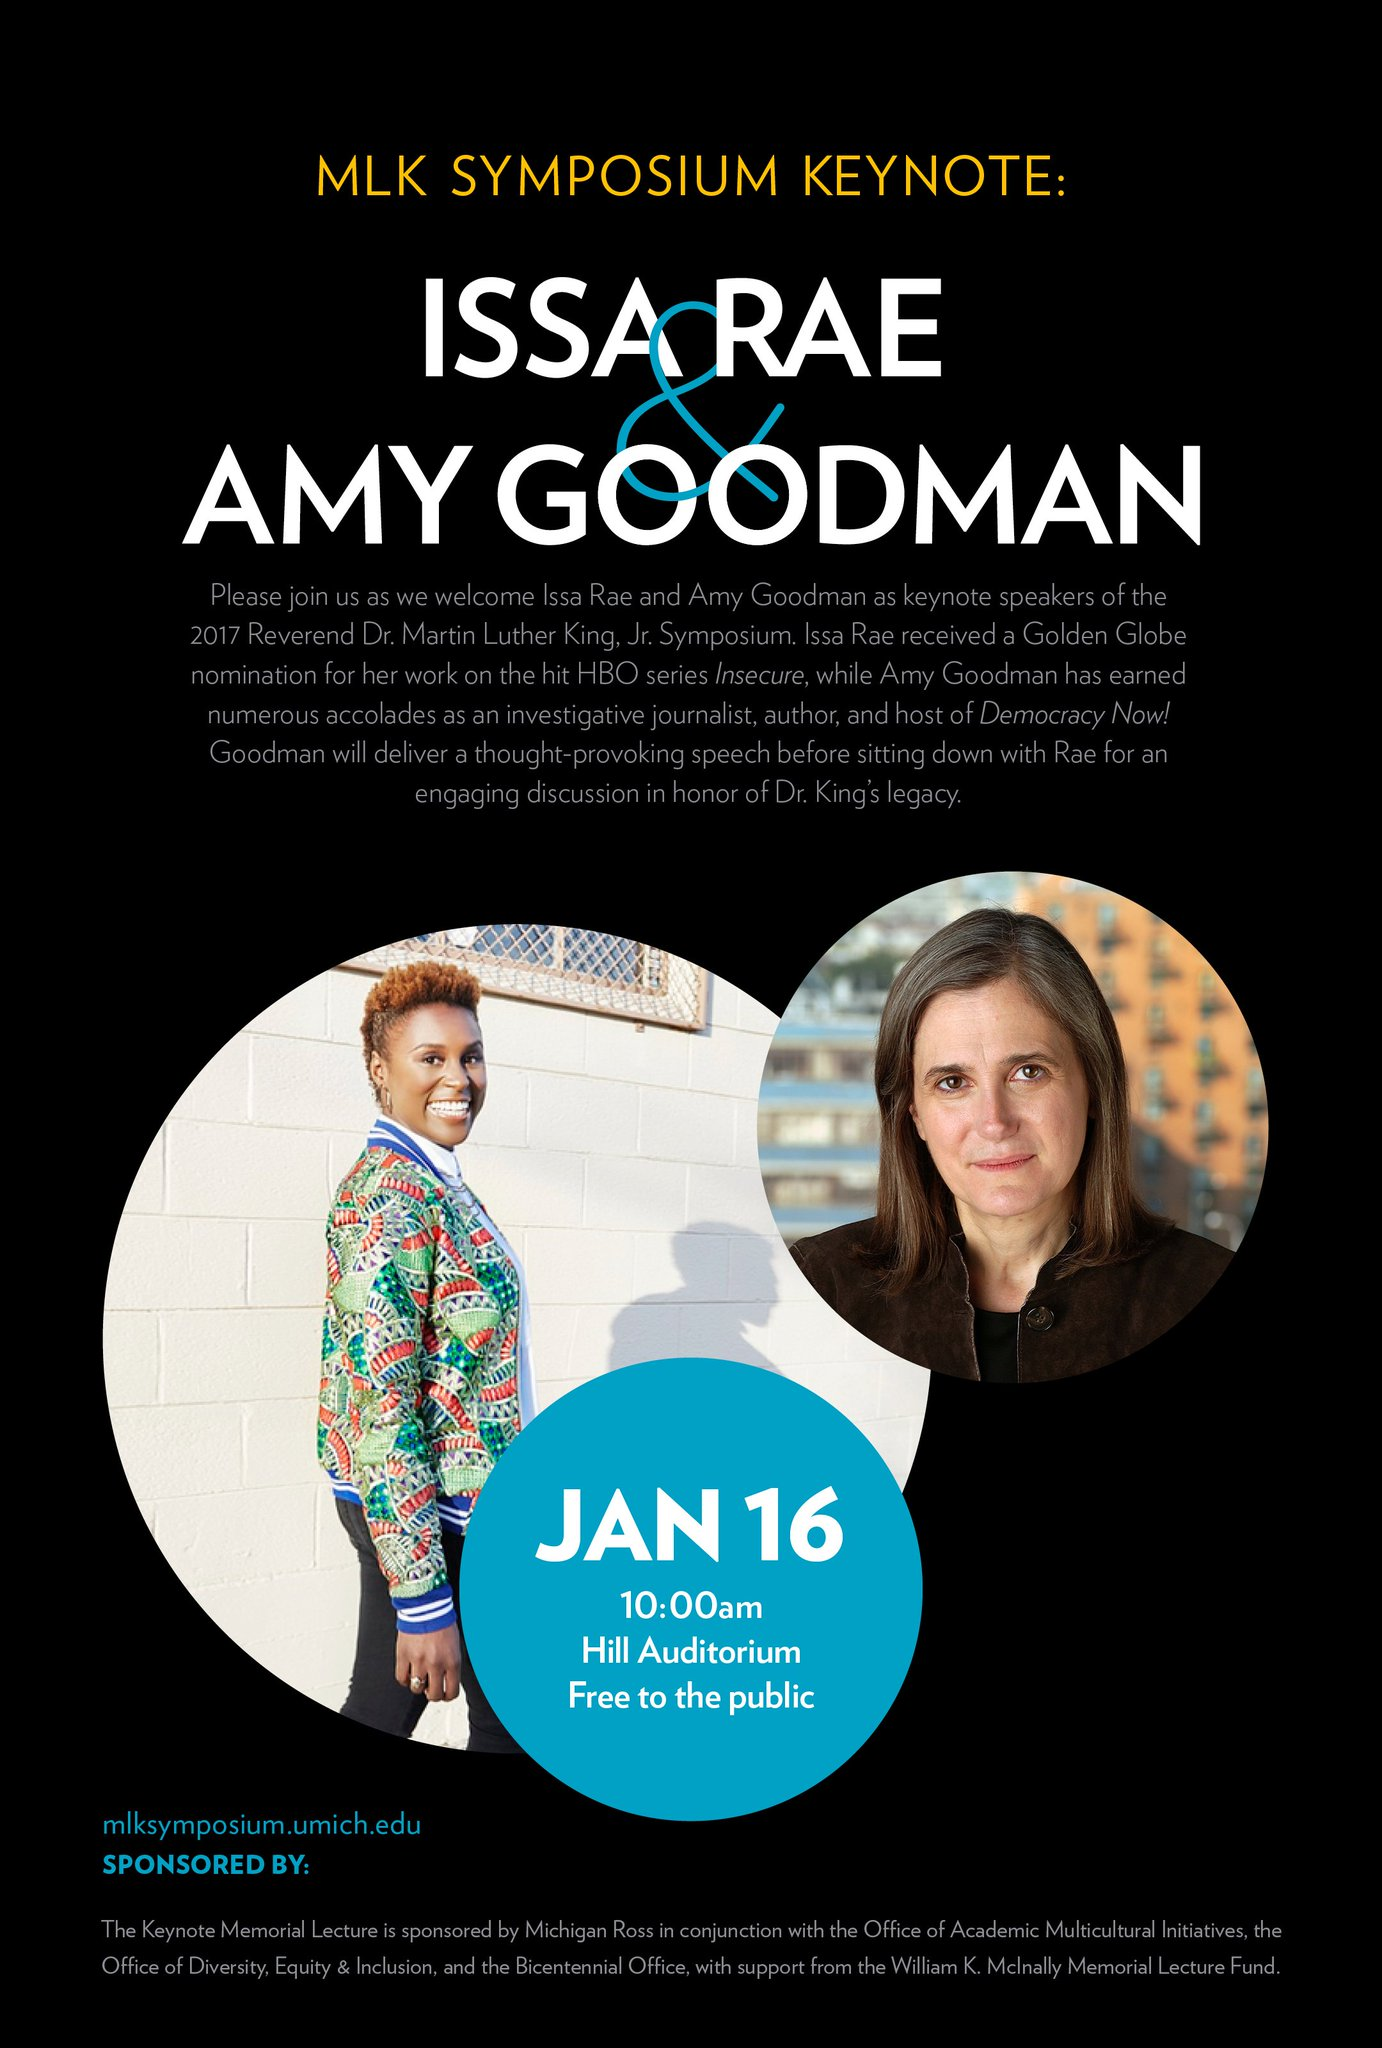 TODAY: We welcome @IssaRae and Amy Goodman (@democracynow) for our #UmichMLKDay2017 discussion. Watch live at 10am: https://t.co/08Z1GanpOy https://t.co/fTfYpA58Gn